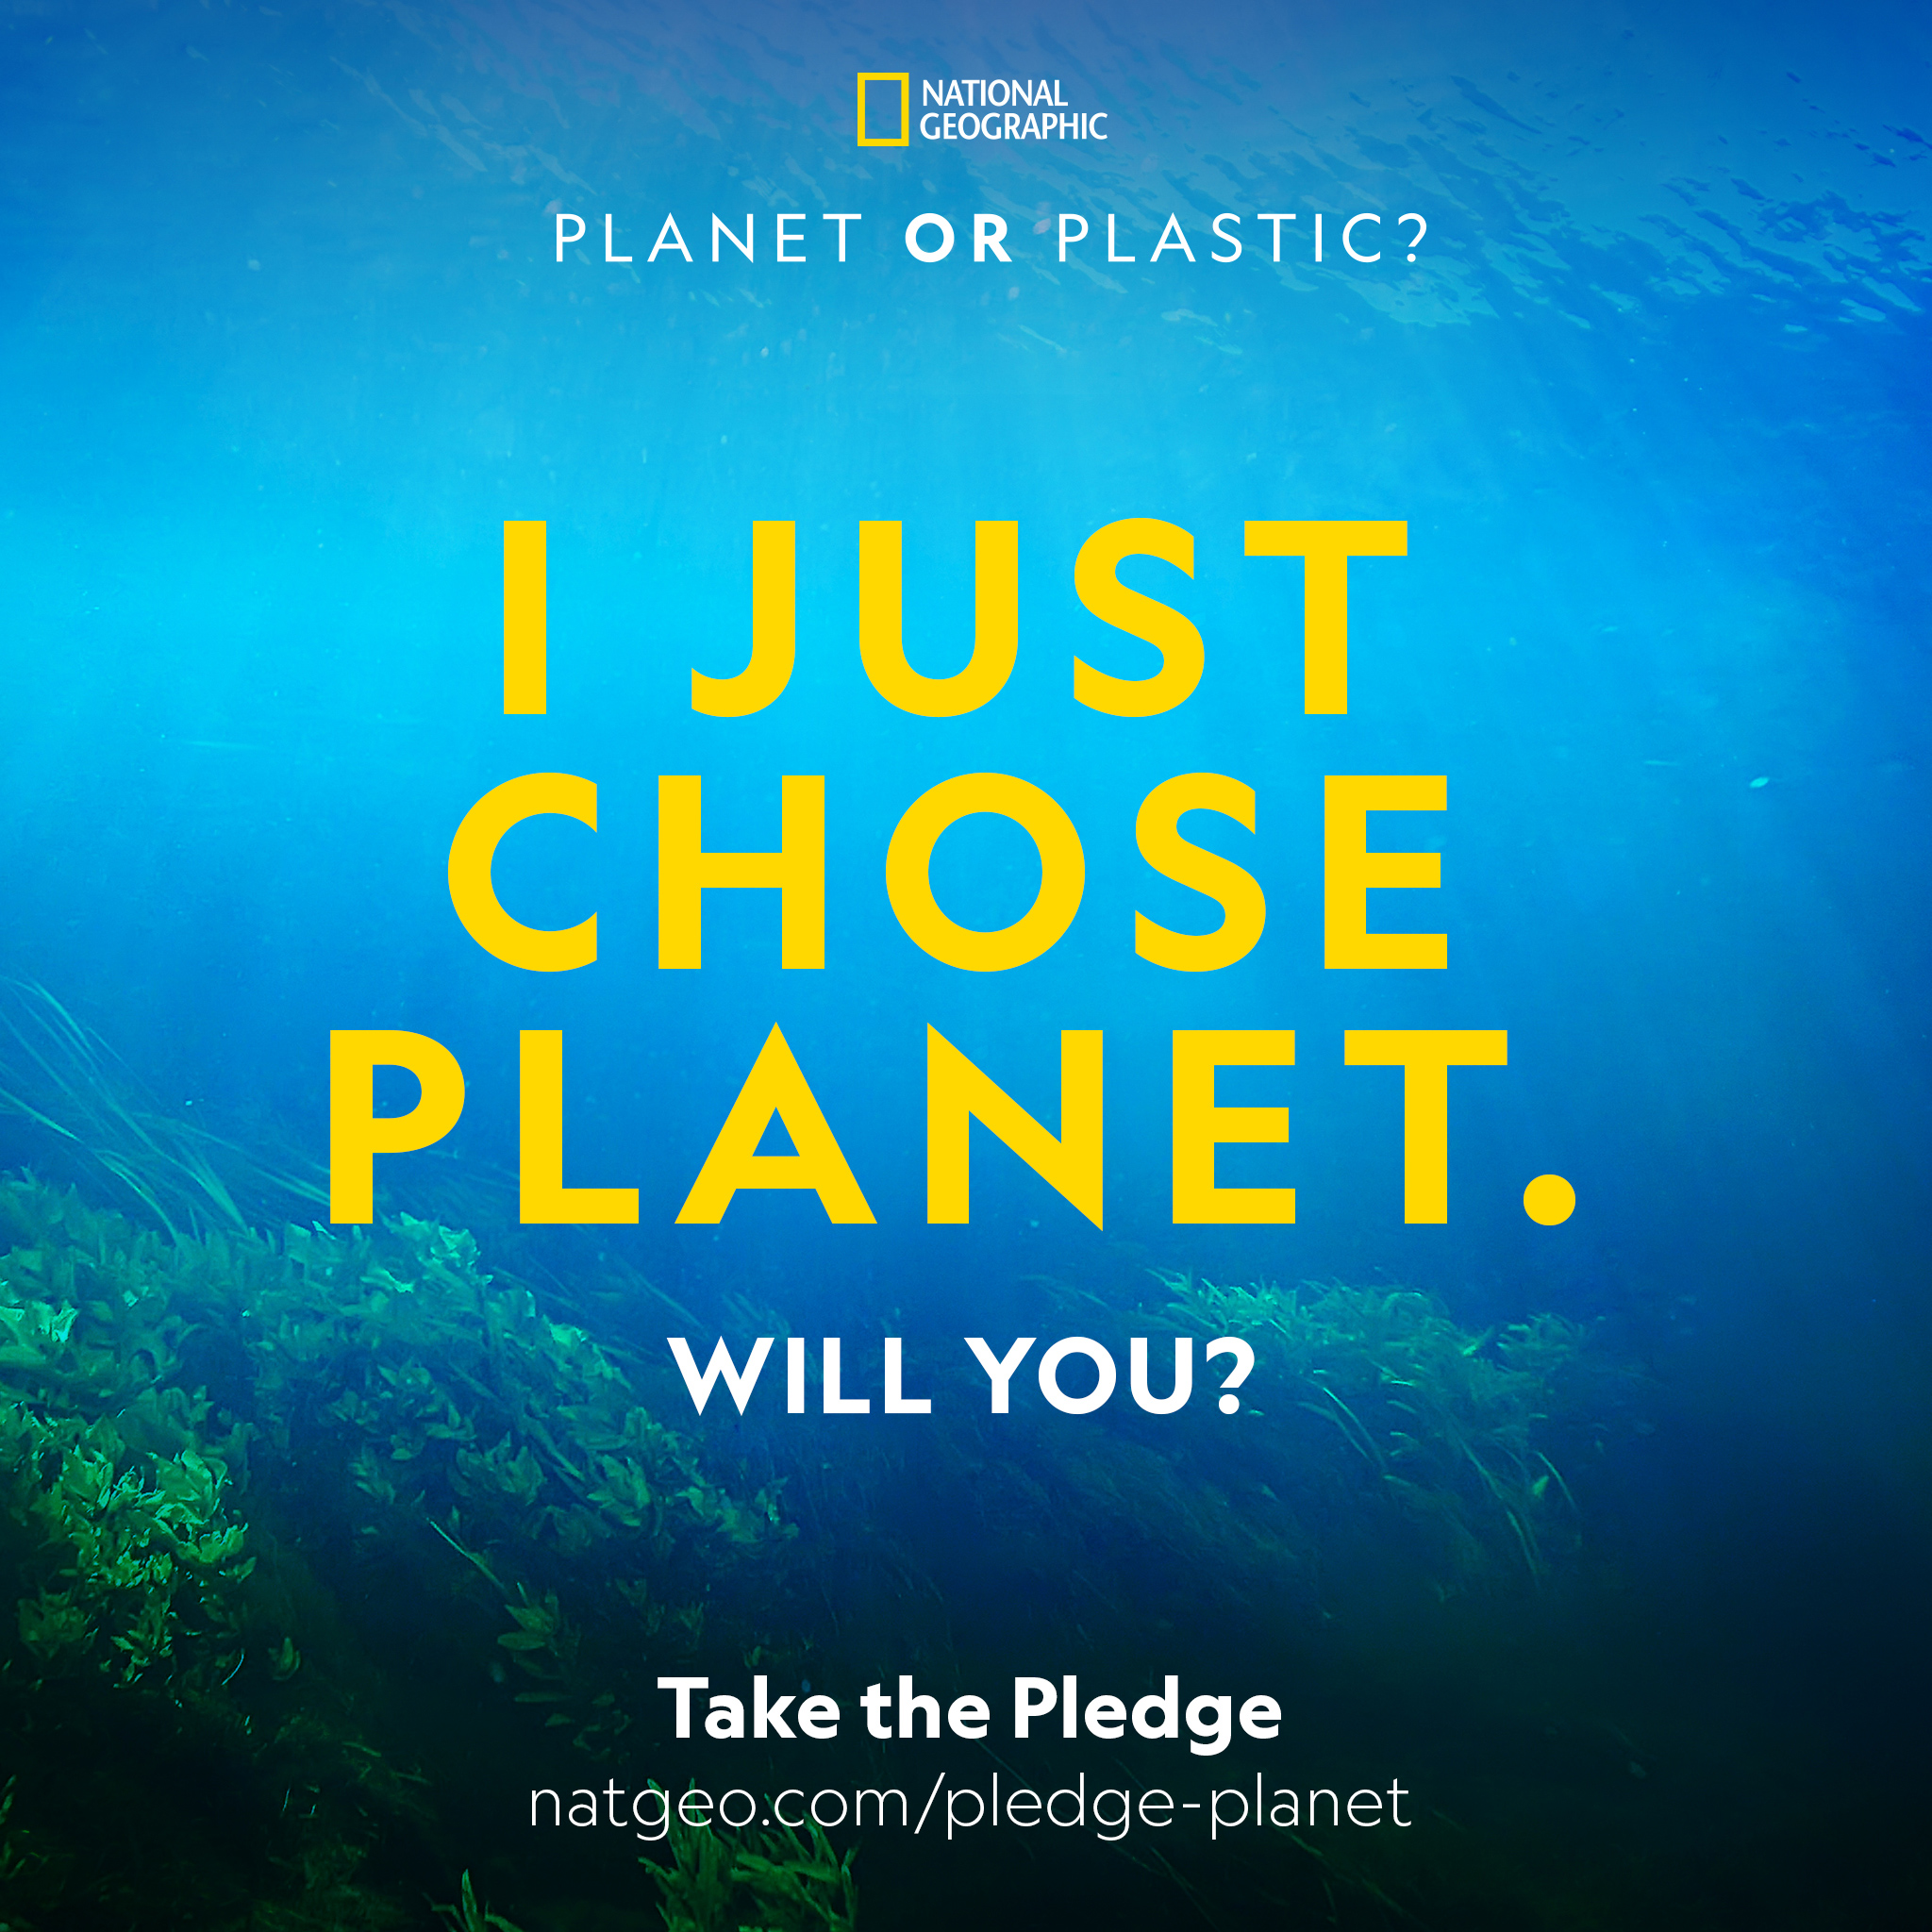 I just chose Planet. Will you?